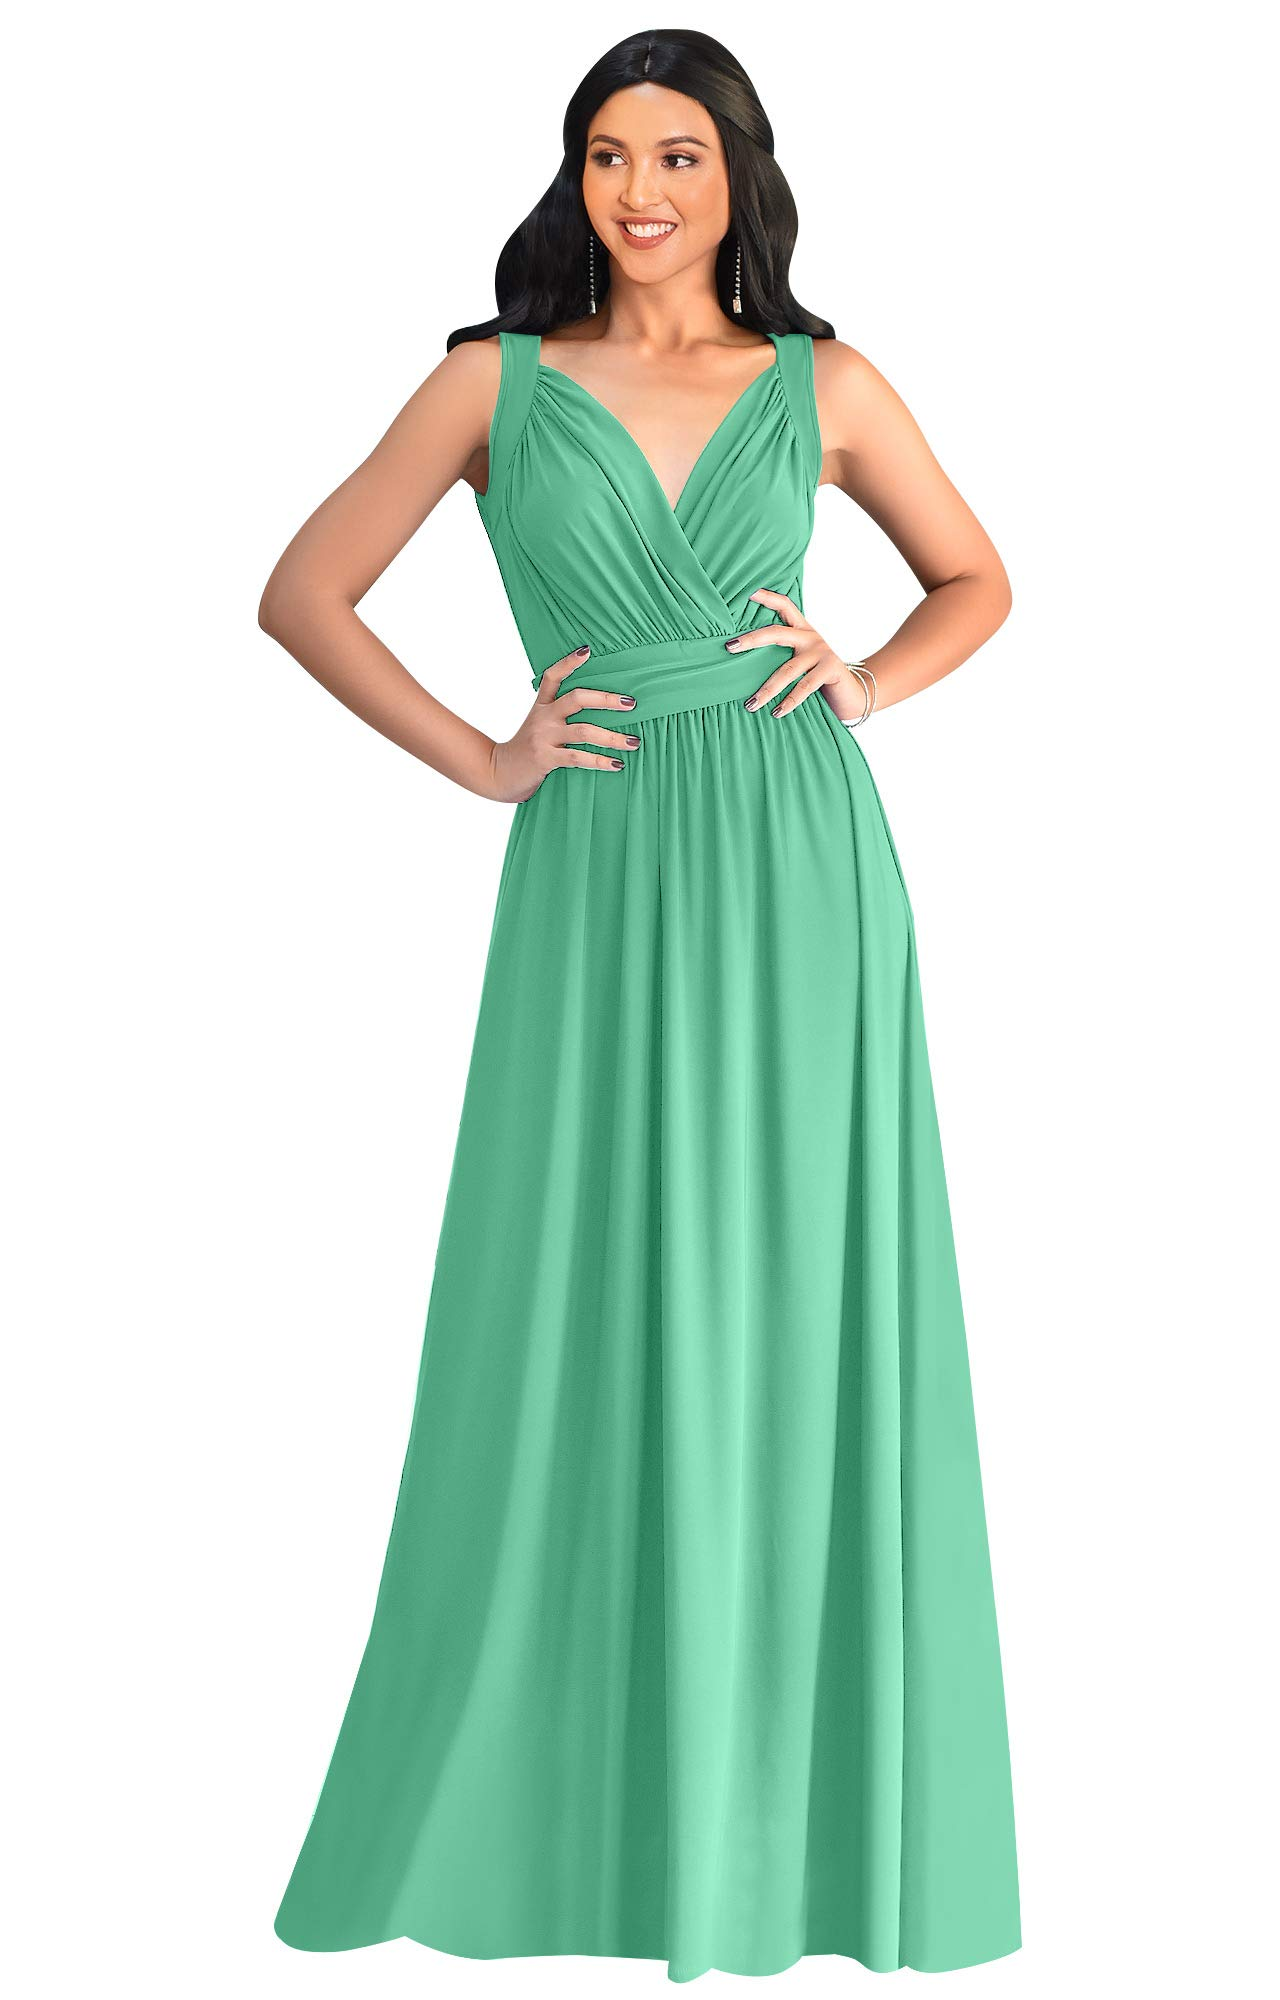 1b7cc37760290 KOH KOH Petite Womens Long Sleeveless Flowy Bridesmaids Cocktail Party  Evening Formal Sexy Summer Wedding Guest Ball Prom Gown Gowns Maxi Dress ...